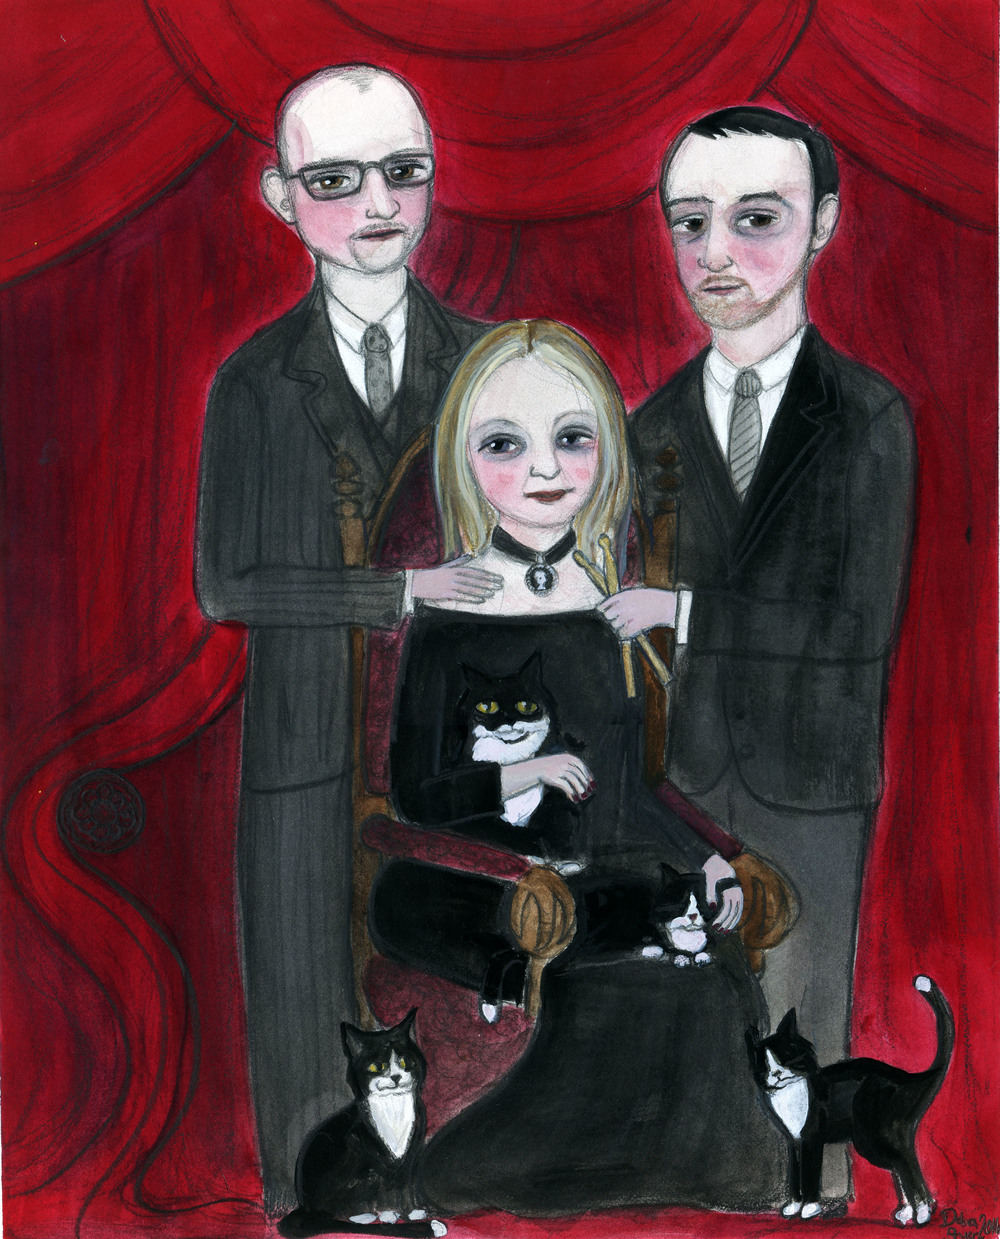 My latest Custom Portrait. I love the Victorian Gothness of this portrait. You gotta love those cats.